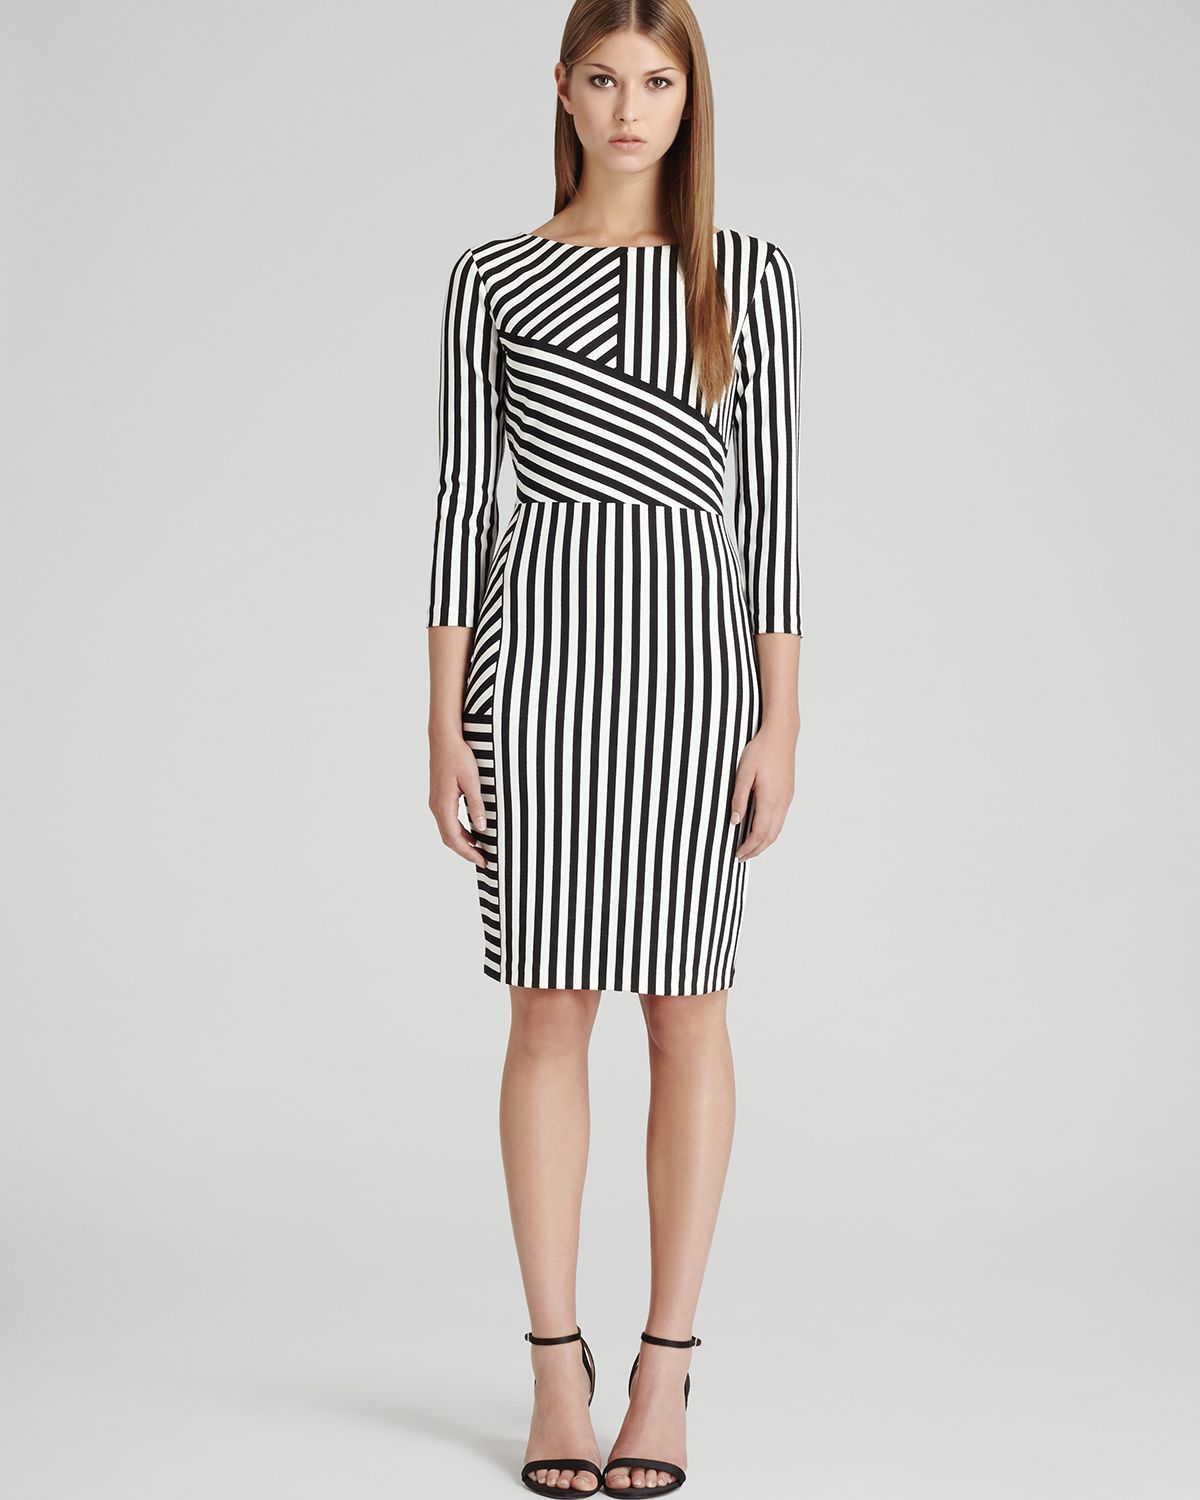 REISS Dress - Carter Jersey Stripe | Bloomingdale's